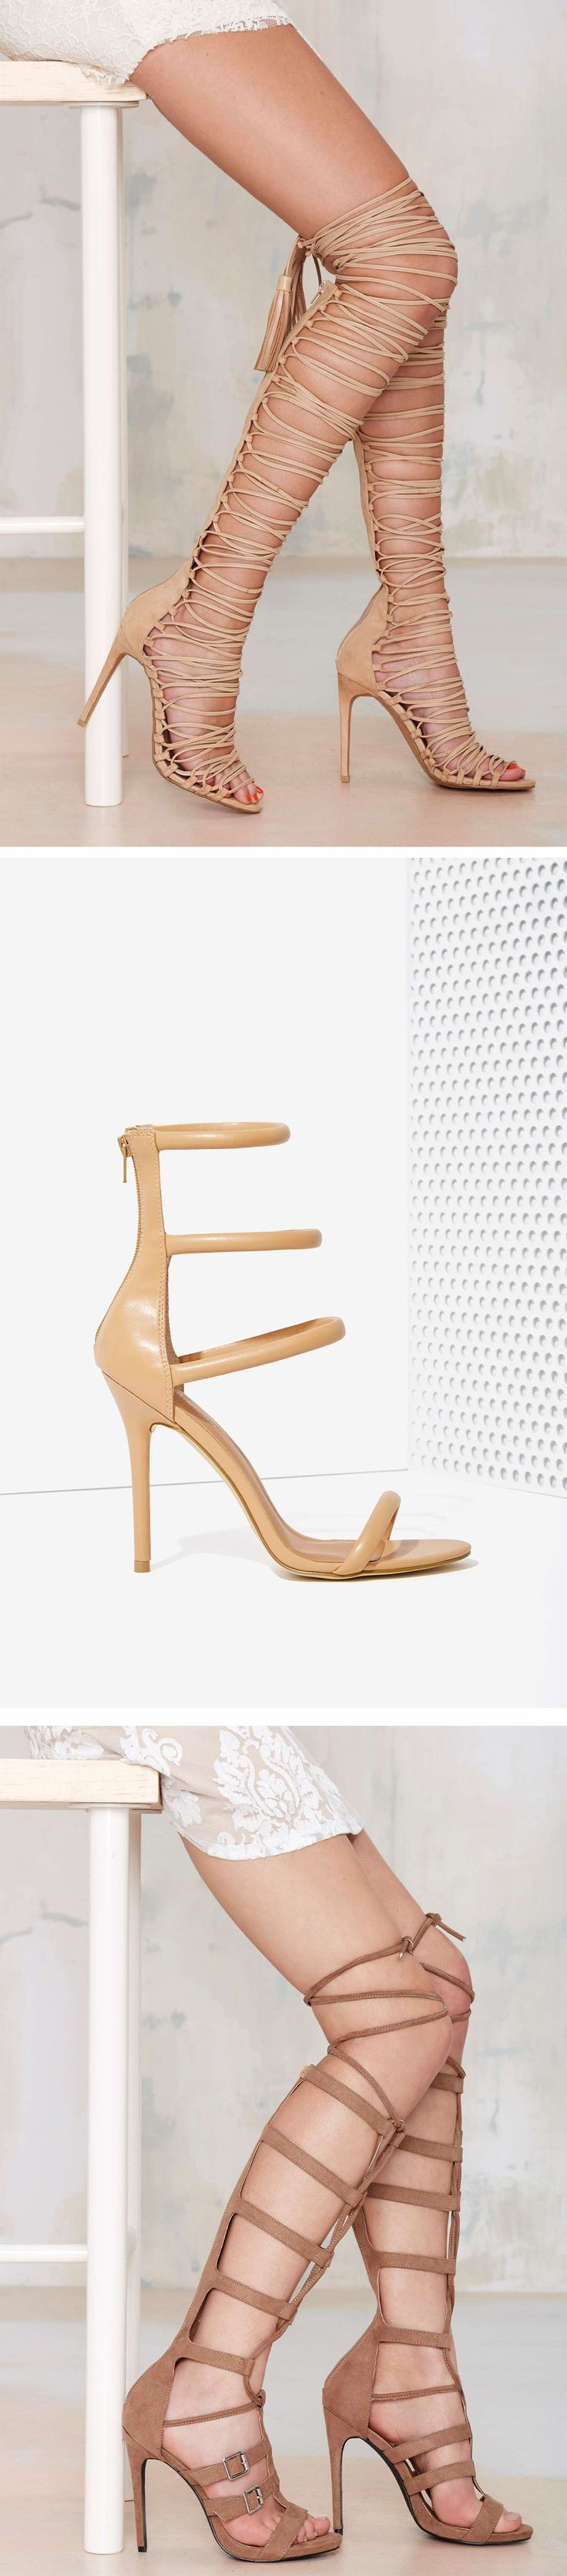 United we stand—in sky-high strappy heels, that is. Get HEEL(ed) at Nasty Gal in knee-high gladiators, open-toe stilettos and more!